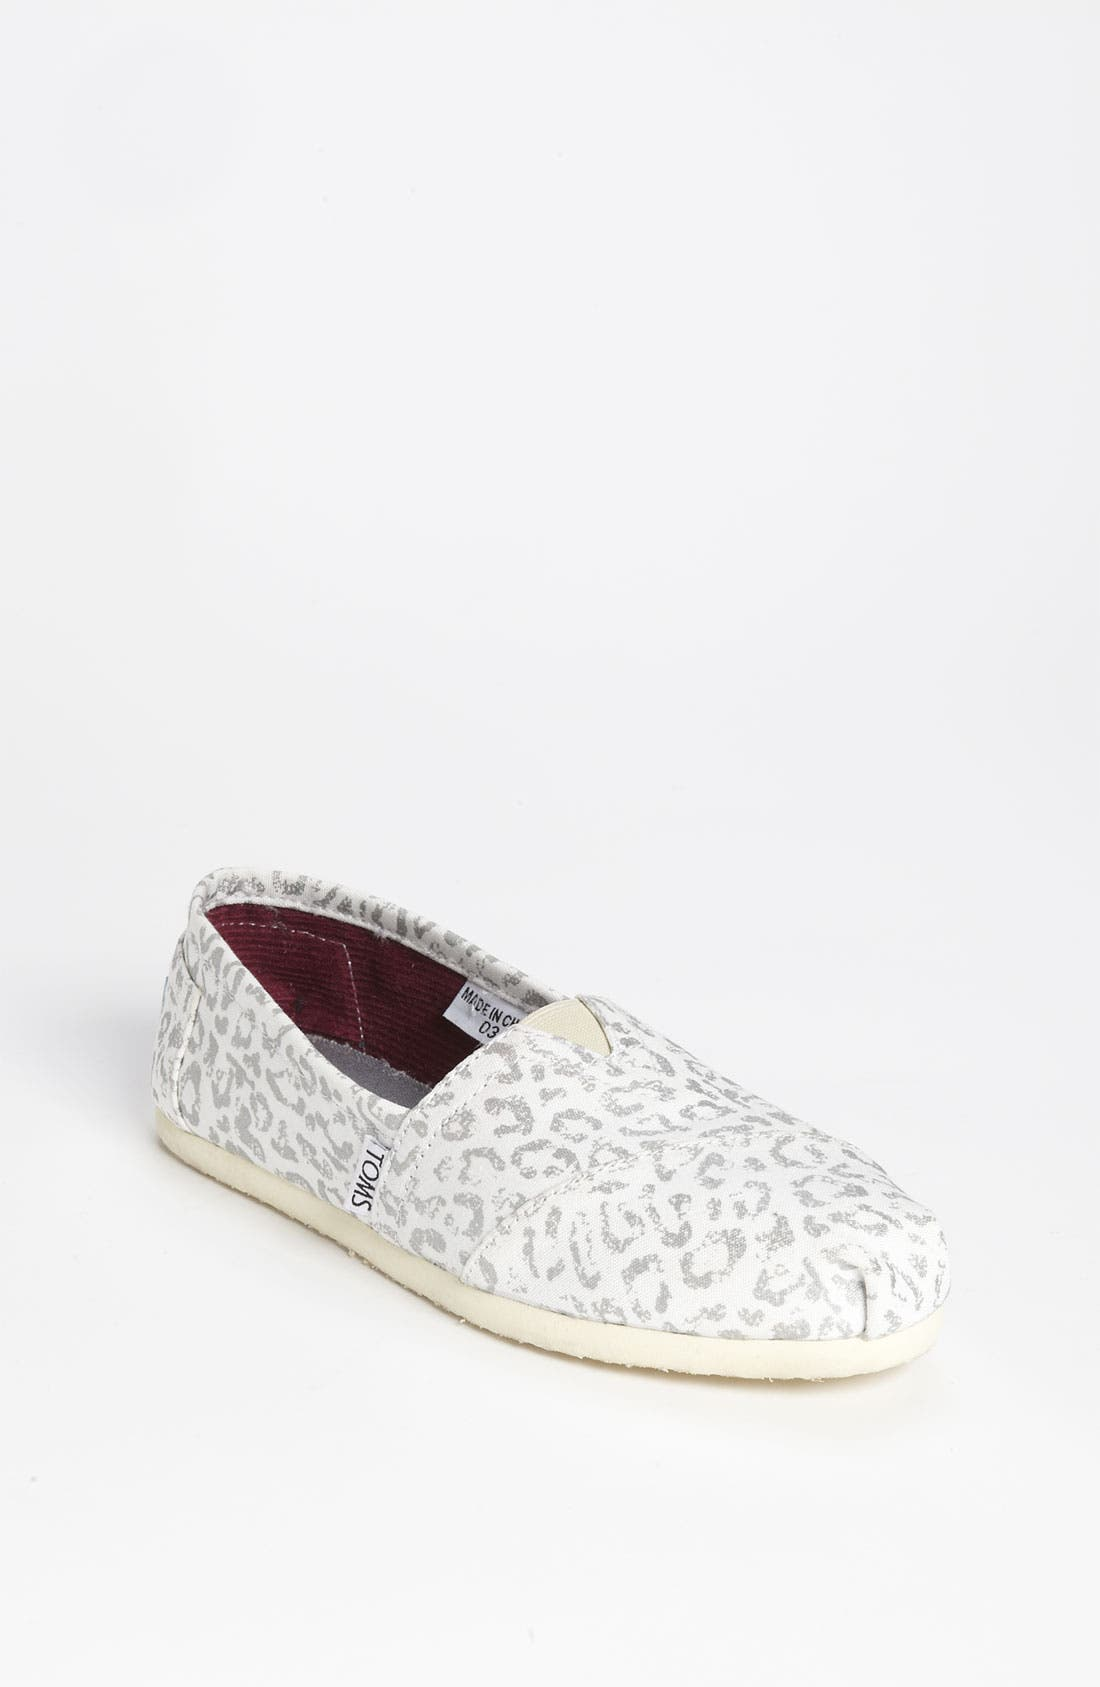 Main Image - TOMS 'Classic - Snow Leopard' Slip-On (Women)